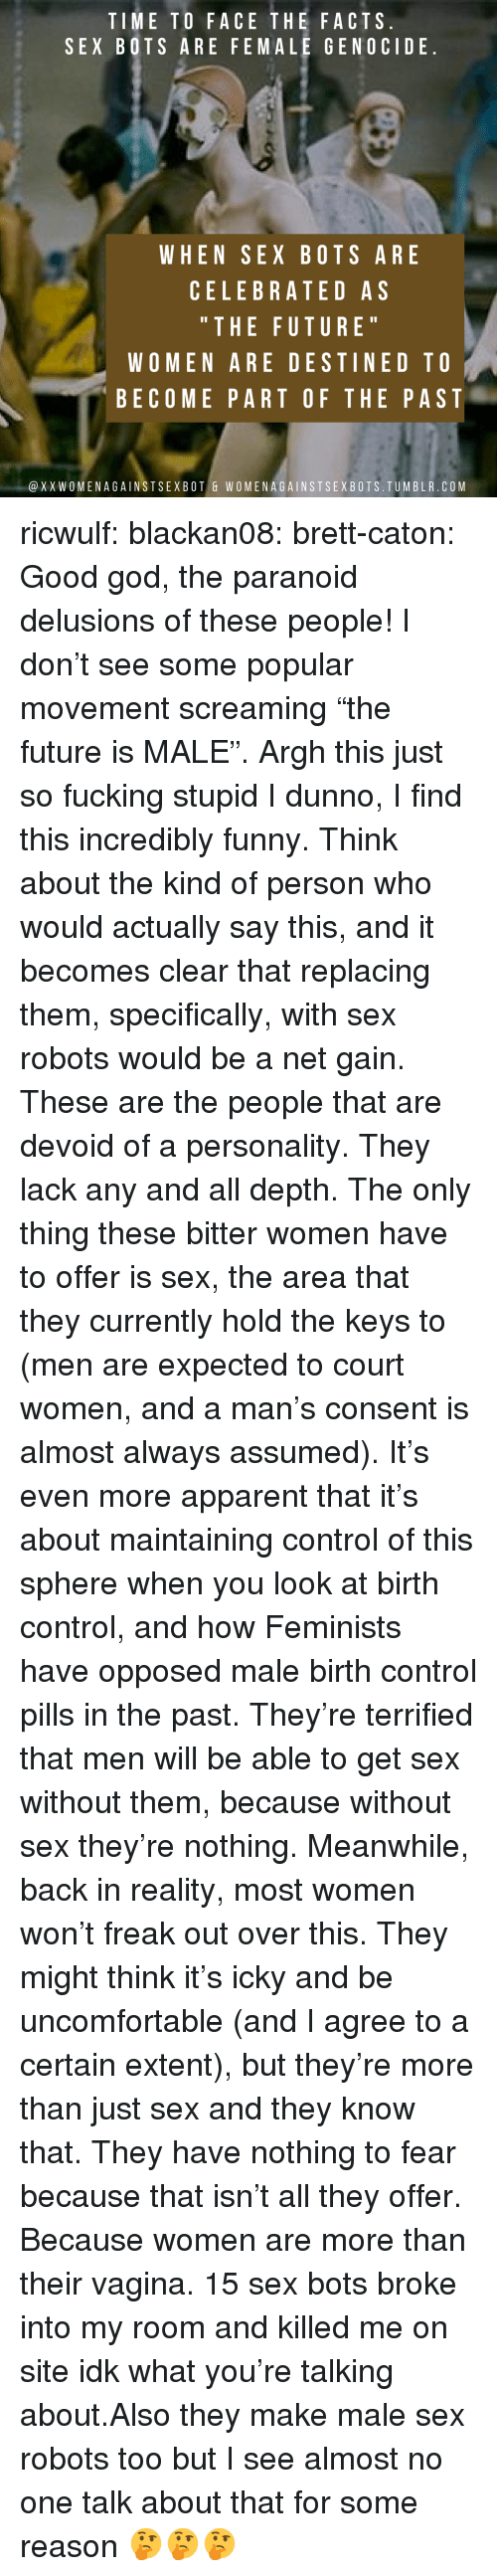 "Feminists: TIME TO FACE THE FACTS  SEX BOTS ARE FEMALE GENOCIDE  WHEN SEX BOTS ARE  CELEBRATED AS  "" THE FUTURE  WOMEN ARE DESTINED TO  BECOME PART OF THE PAST  @XXWOMENAGAINSTSEXBOT & WOMENAGAINSTSEXBOTS.TUMBLR.COM ricwulf:  blackan08:   brett-caton: Good god, the paranoid delusions of these people! I don't see some popular movement screaming ""the future is MALE"". Argh this just so fucking stupid   I dunno, I find this incredibly funny. Think about the kind of person who would actually say this, and it becomes clear that replacing them, specifically, with sex robots would be a net gain. These are the people that are devoid of a personality. They lack any and all depth. The only thing these bitter women have to offer is sex, the area that they currently hold the keys to (men are expected to court women, and a man's consent is almost always assumed). It's even more apparent that it's about maintaining control of this sphere when you look at birth control, and how Feminists have opposed male birth control pills in the past.  They're terrified that men will be able to get sex without them, because without sex they're nothing. Meanwhile, back in reality, most women won't freak out over this. They might think it's icky and be uncomfortable (and I agree to a certain extent), but they're more than just sex and they know that. They have nothing to fear because that isn't all they offer. Because women are more than their vagina.   15 sex bots broke into my room and killed me on site idk what you're talking about.Also they make male sex robots too but I see almost no one talk about that for some reason 🤔🤔🤔"